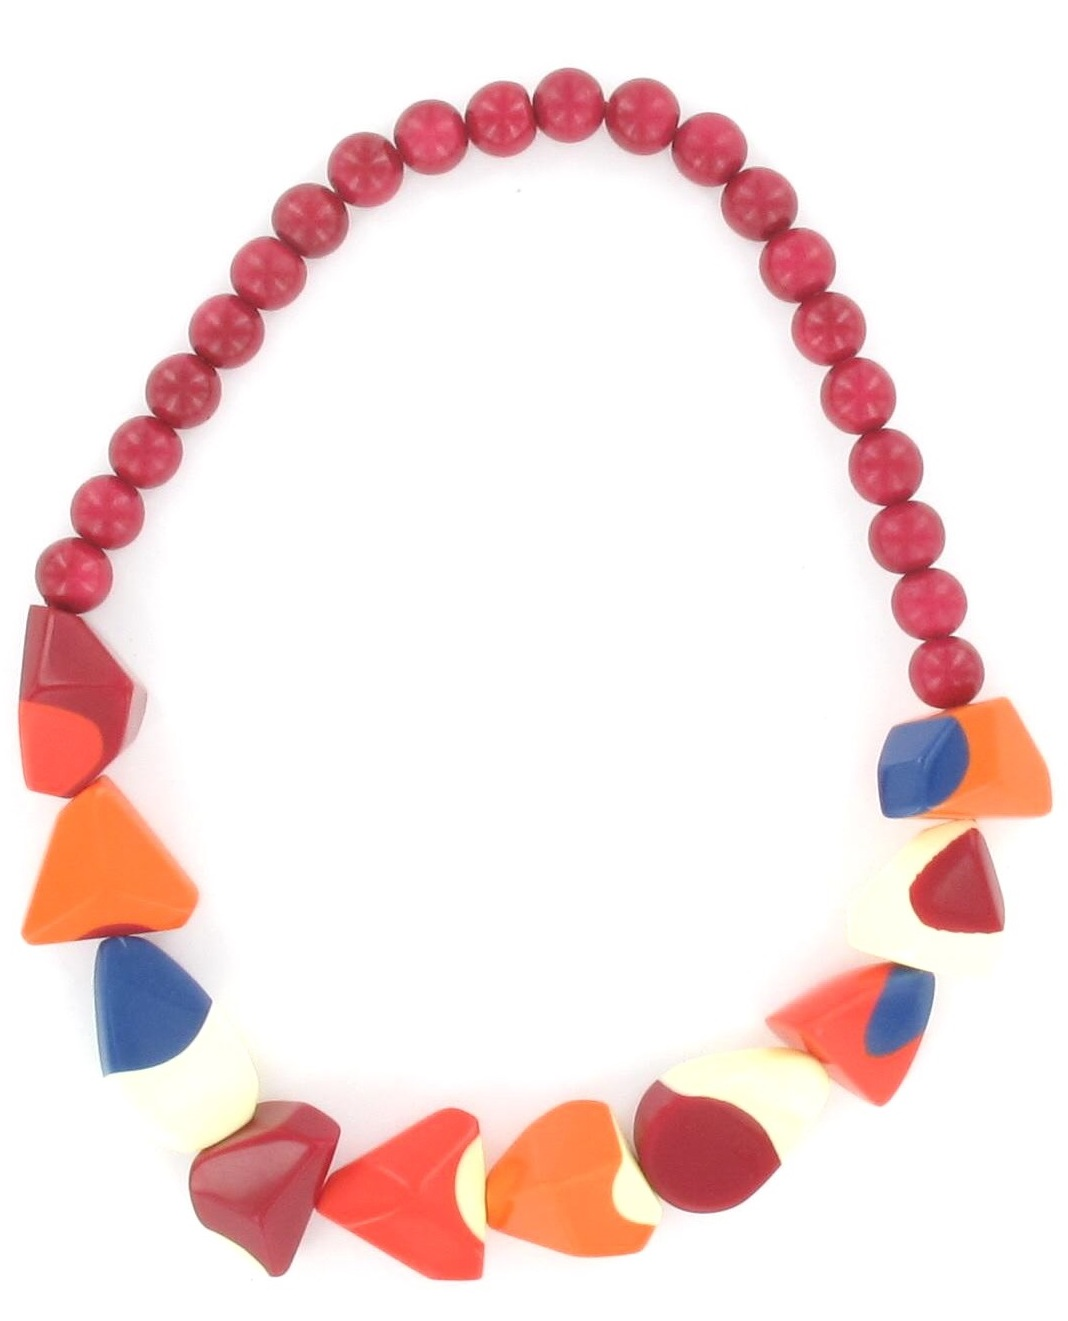 Collier1R_01 - copie (1)